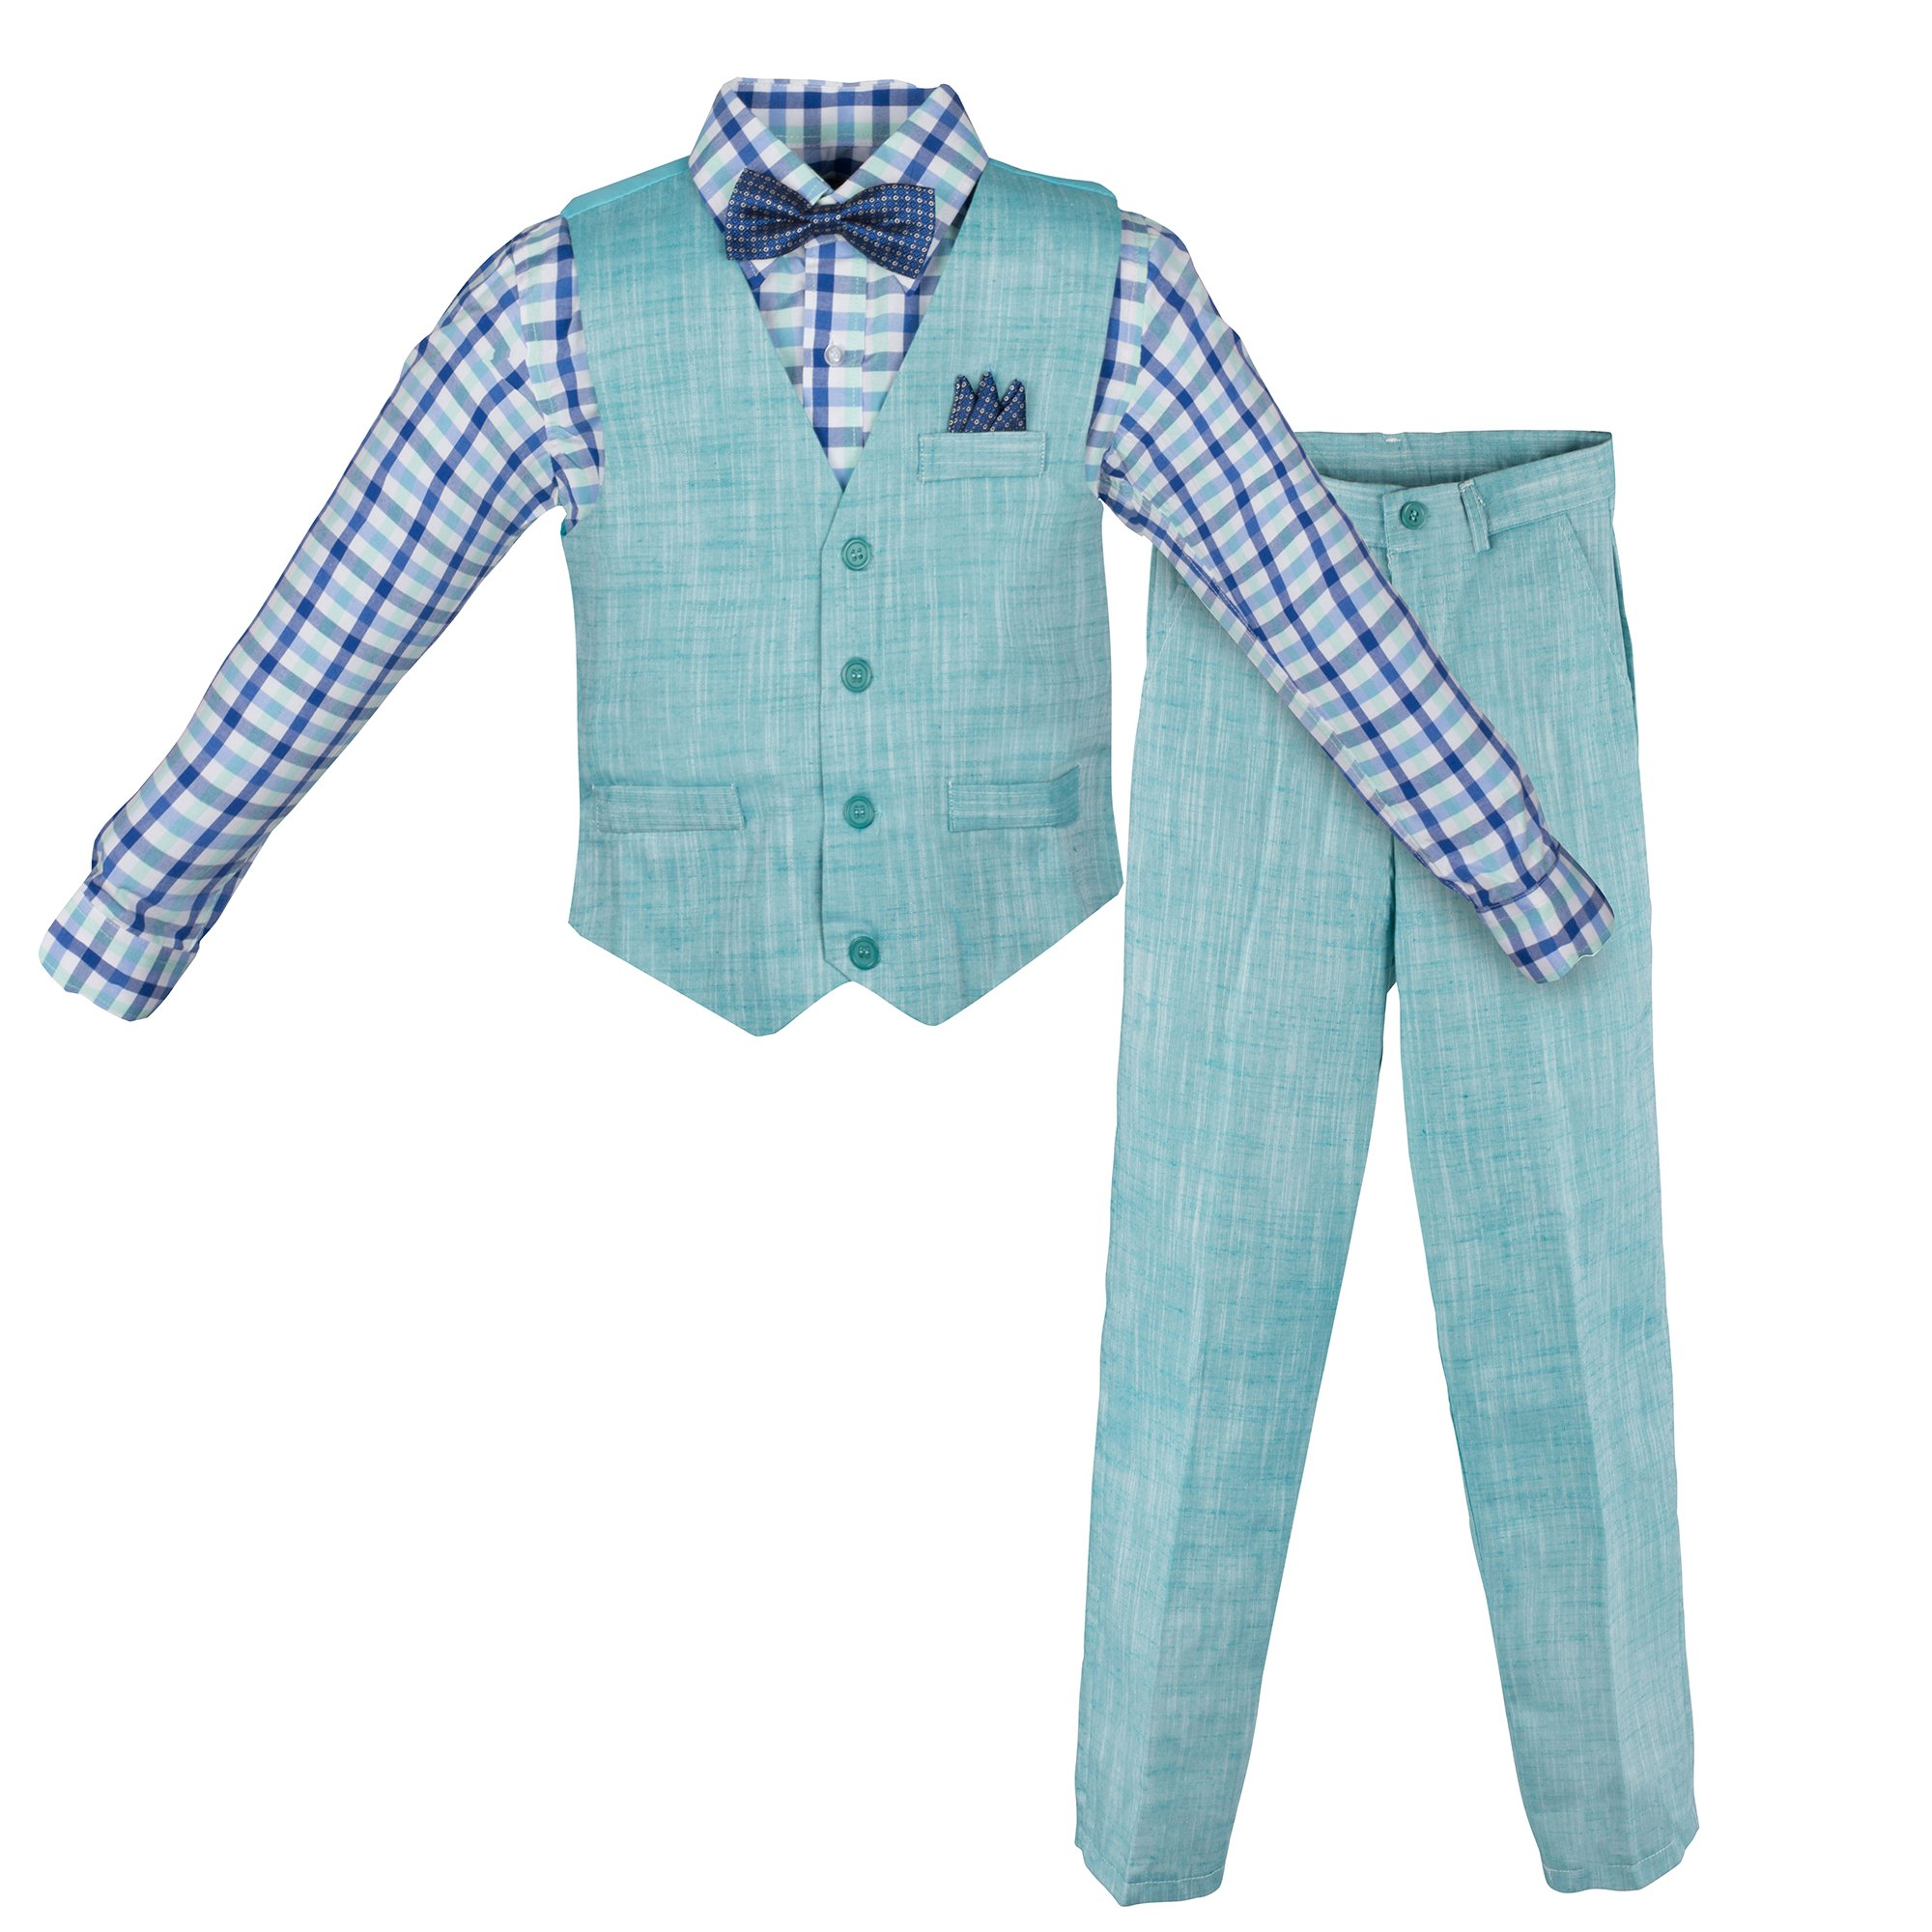 Vittorino Boy's Linen Look 4 Piece Suit Set With Vest Pants Shirt and Tie, Teal, 8